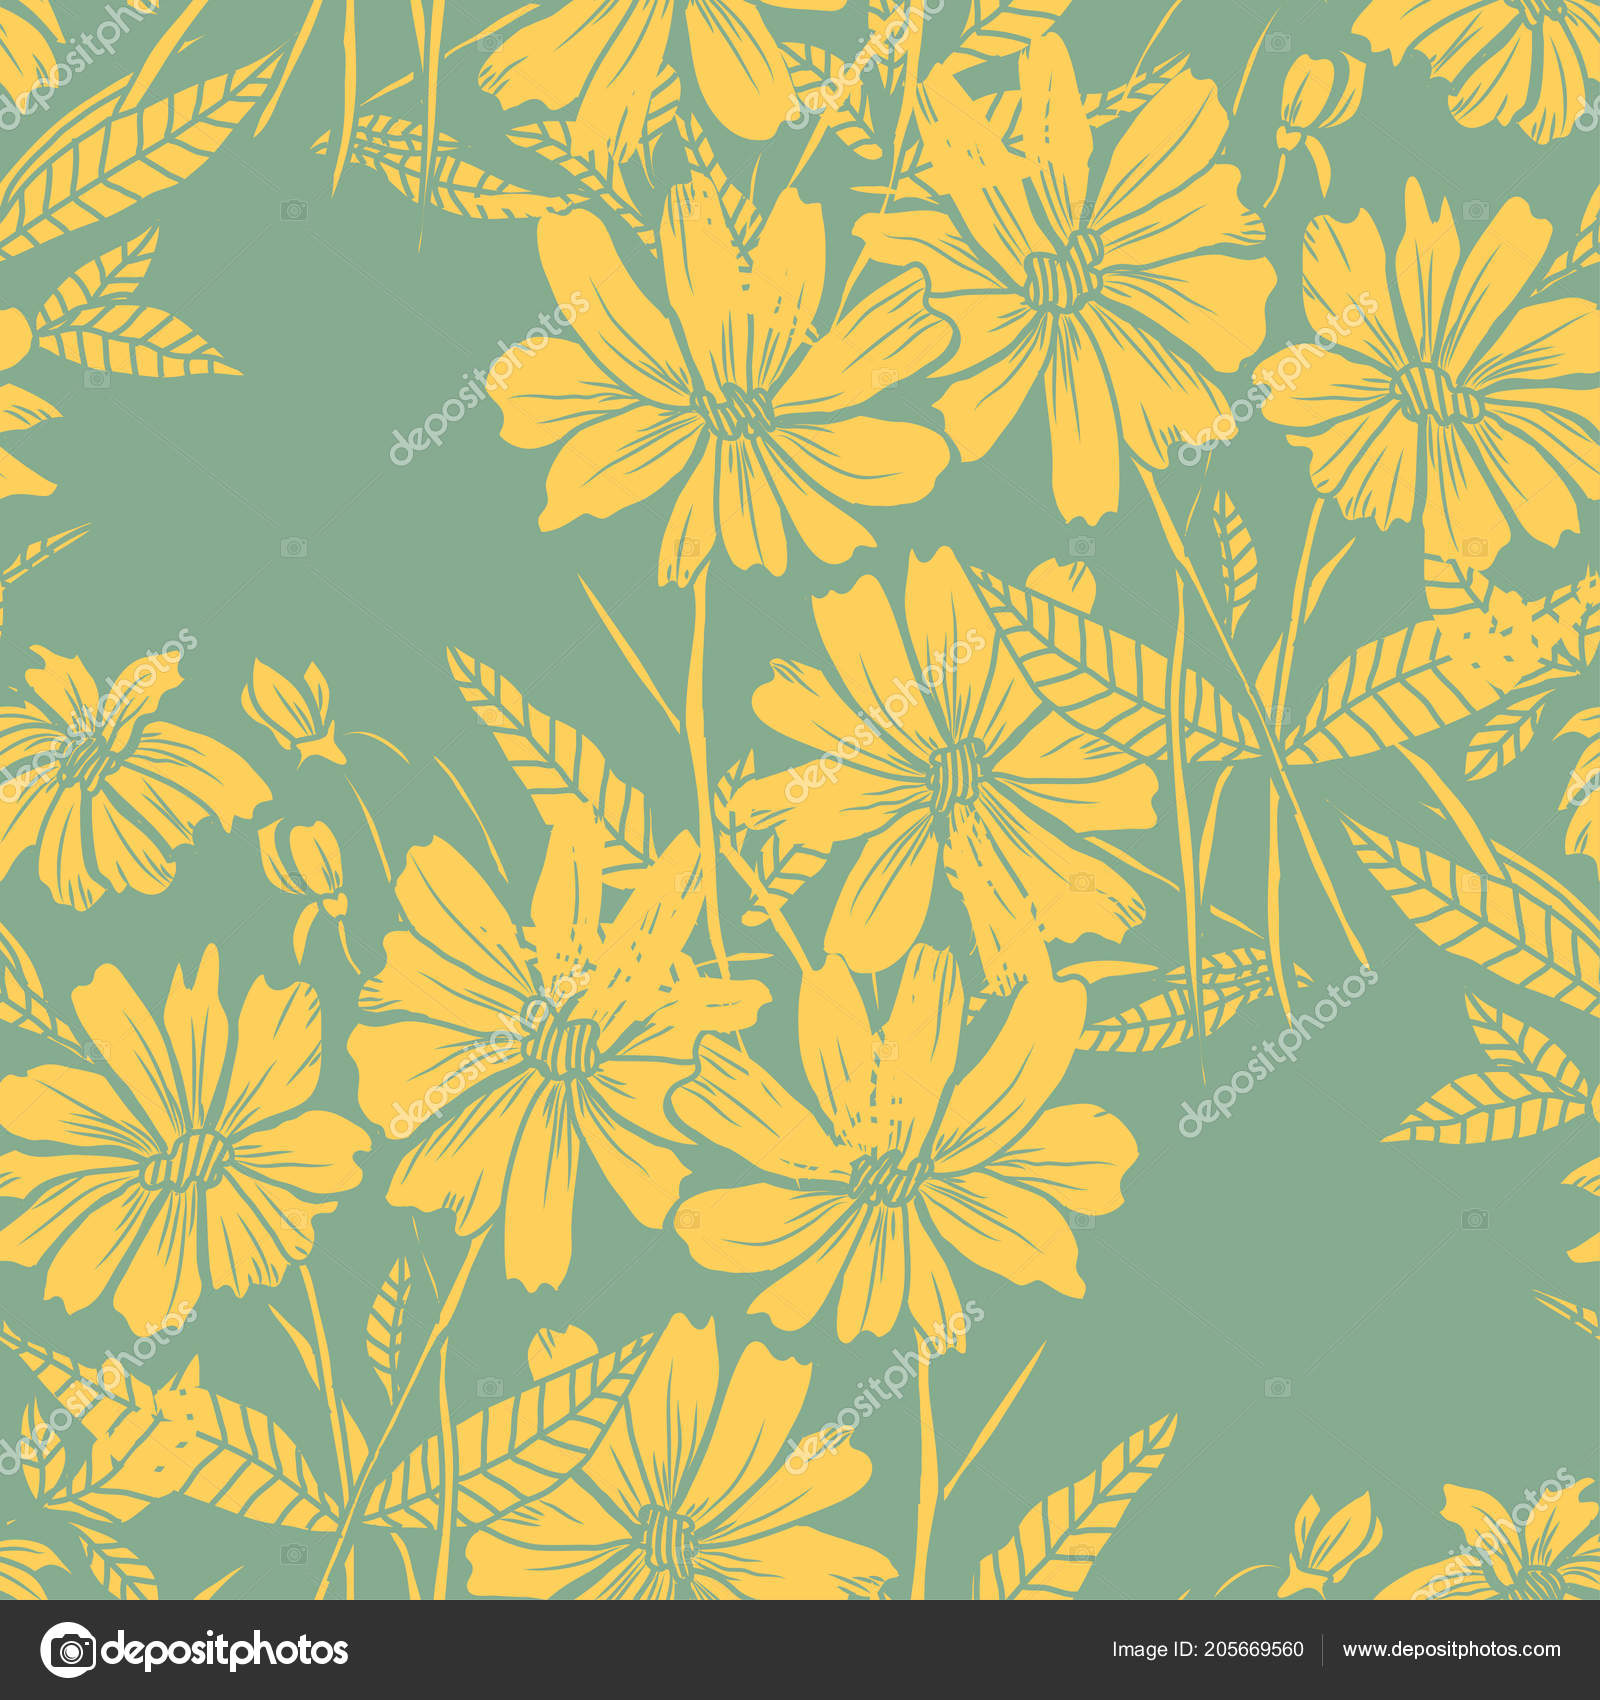 Elegant Seamless Pattern Abstract Flowers Design Elements